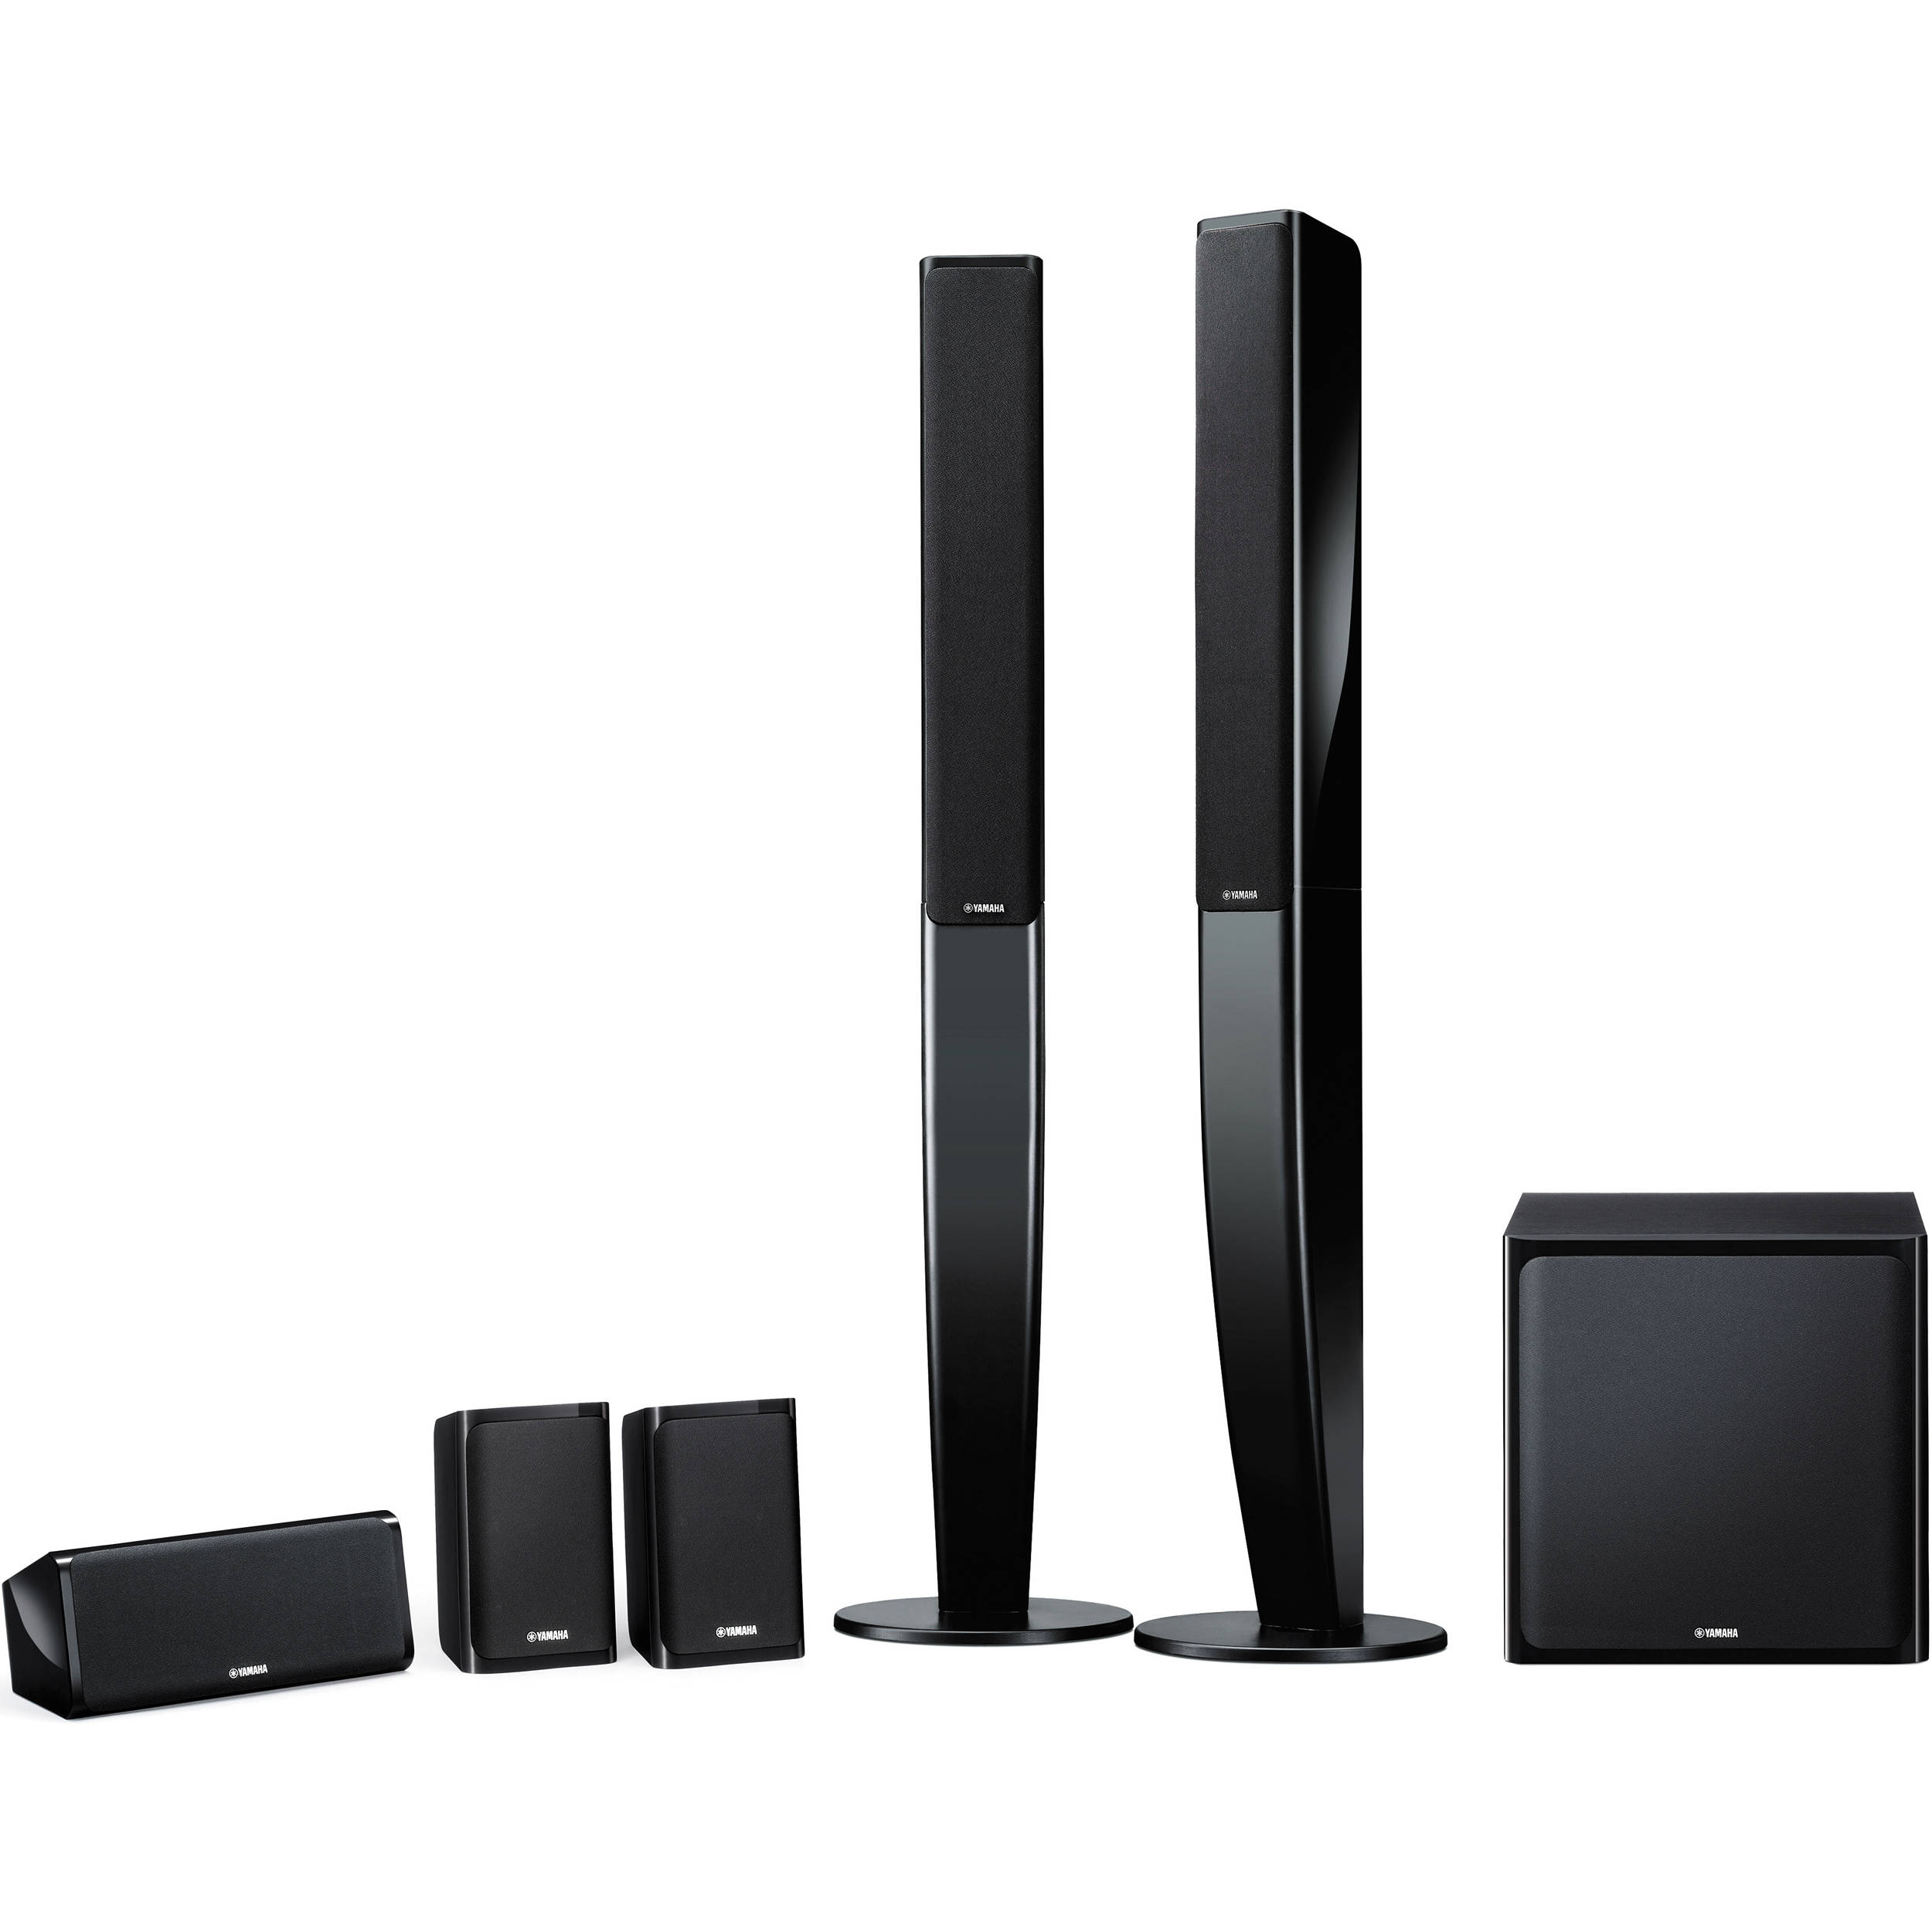 Yamaha ns pa40 5 1 channel speaker system black ns for Yamaha speakers system